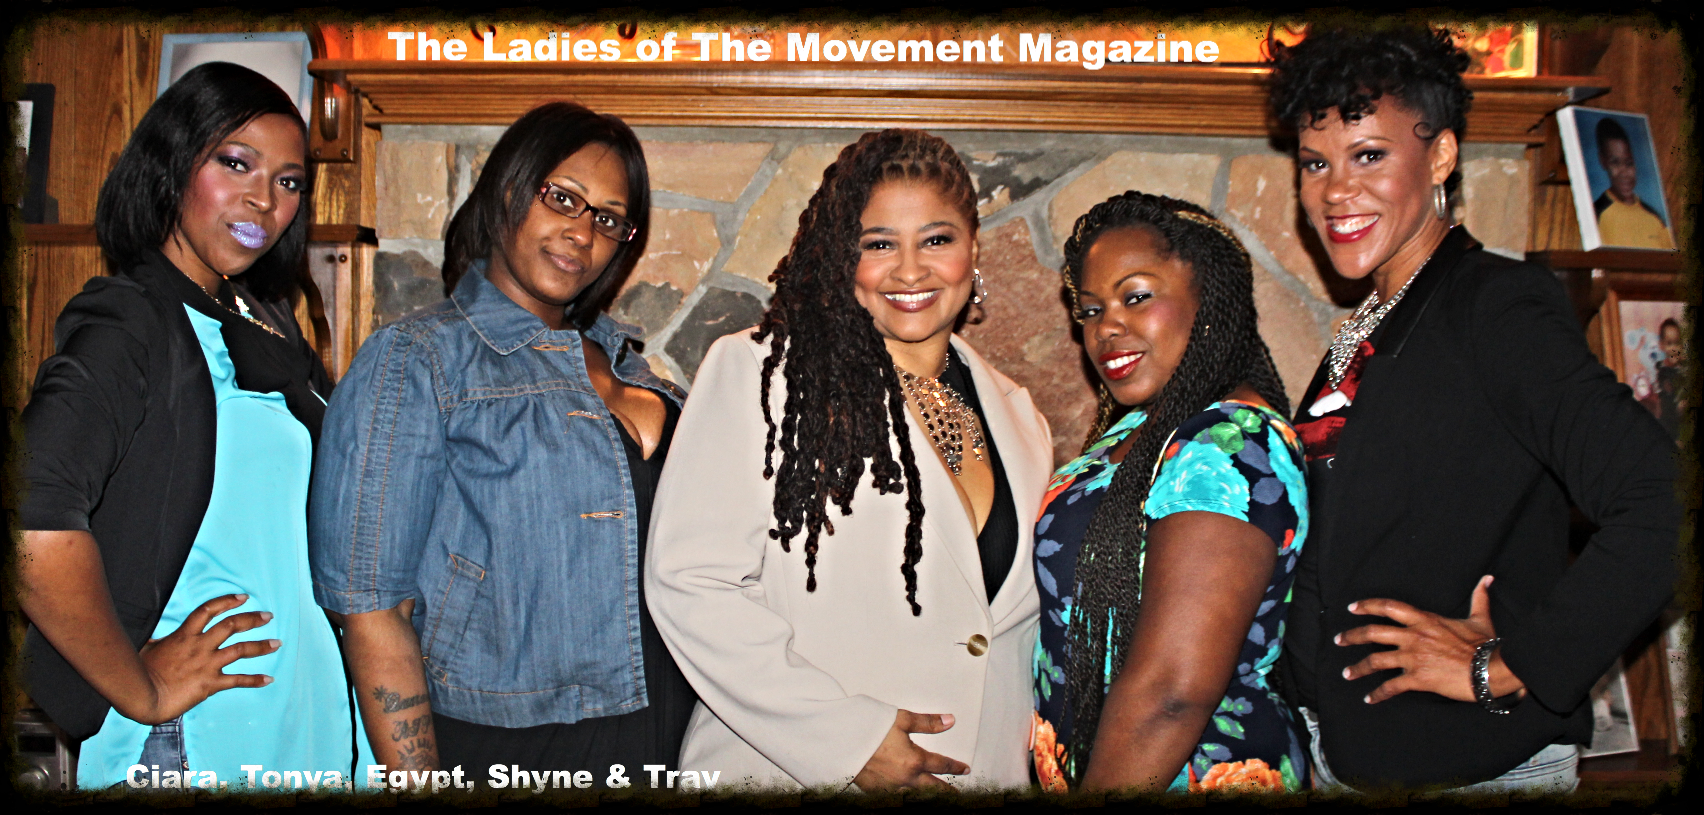 The Ladies of The Movement Magazine